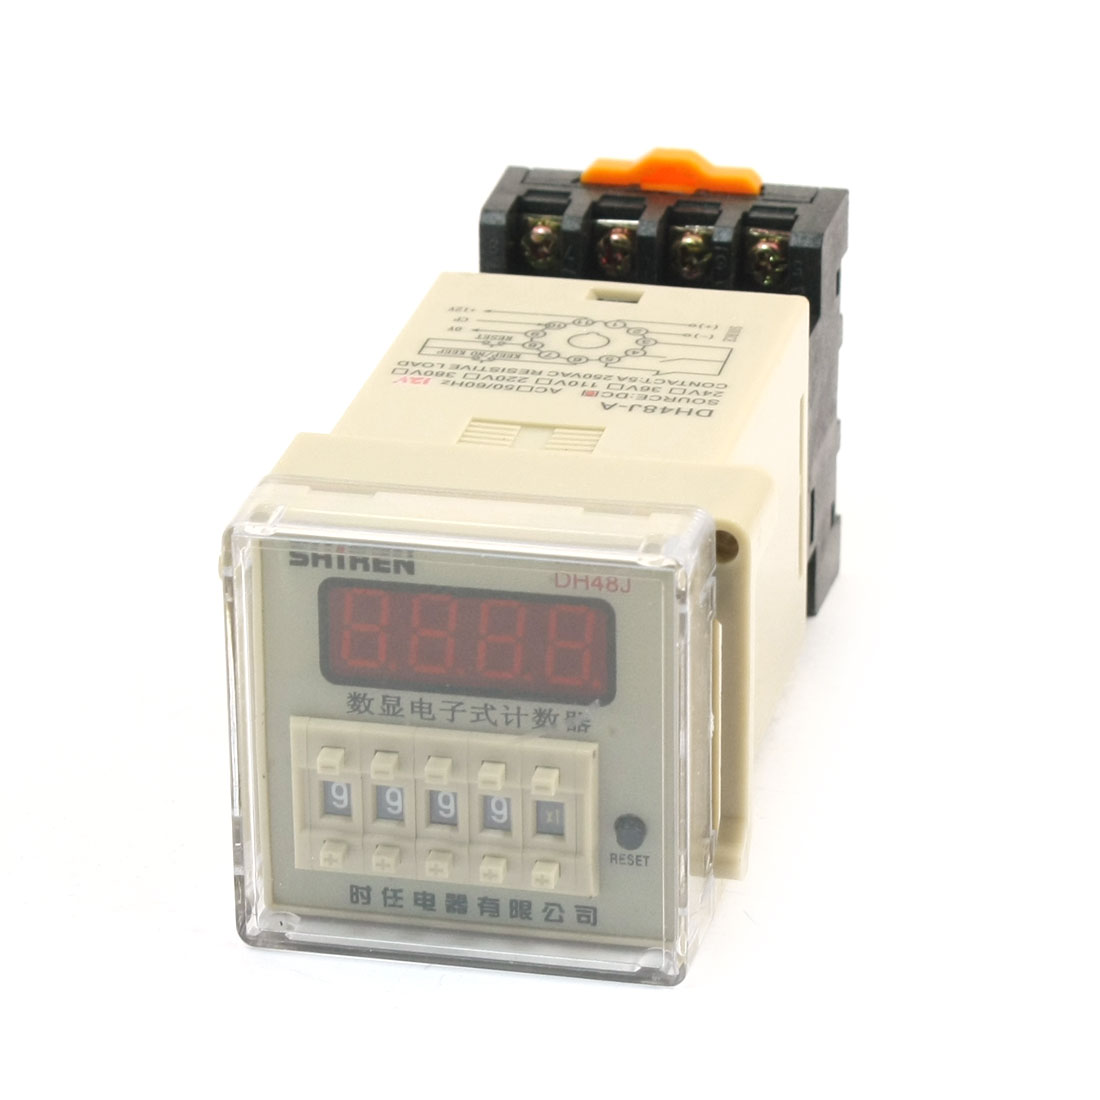 DC 12V 1-9999(x1 x10 x100) Adjustable 30cps Digital Display Counter Relay DH48J-A